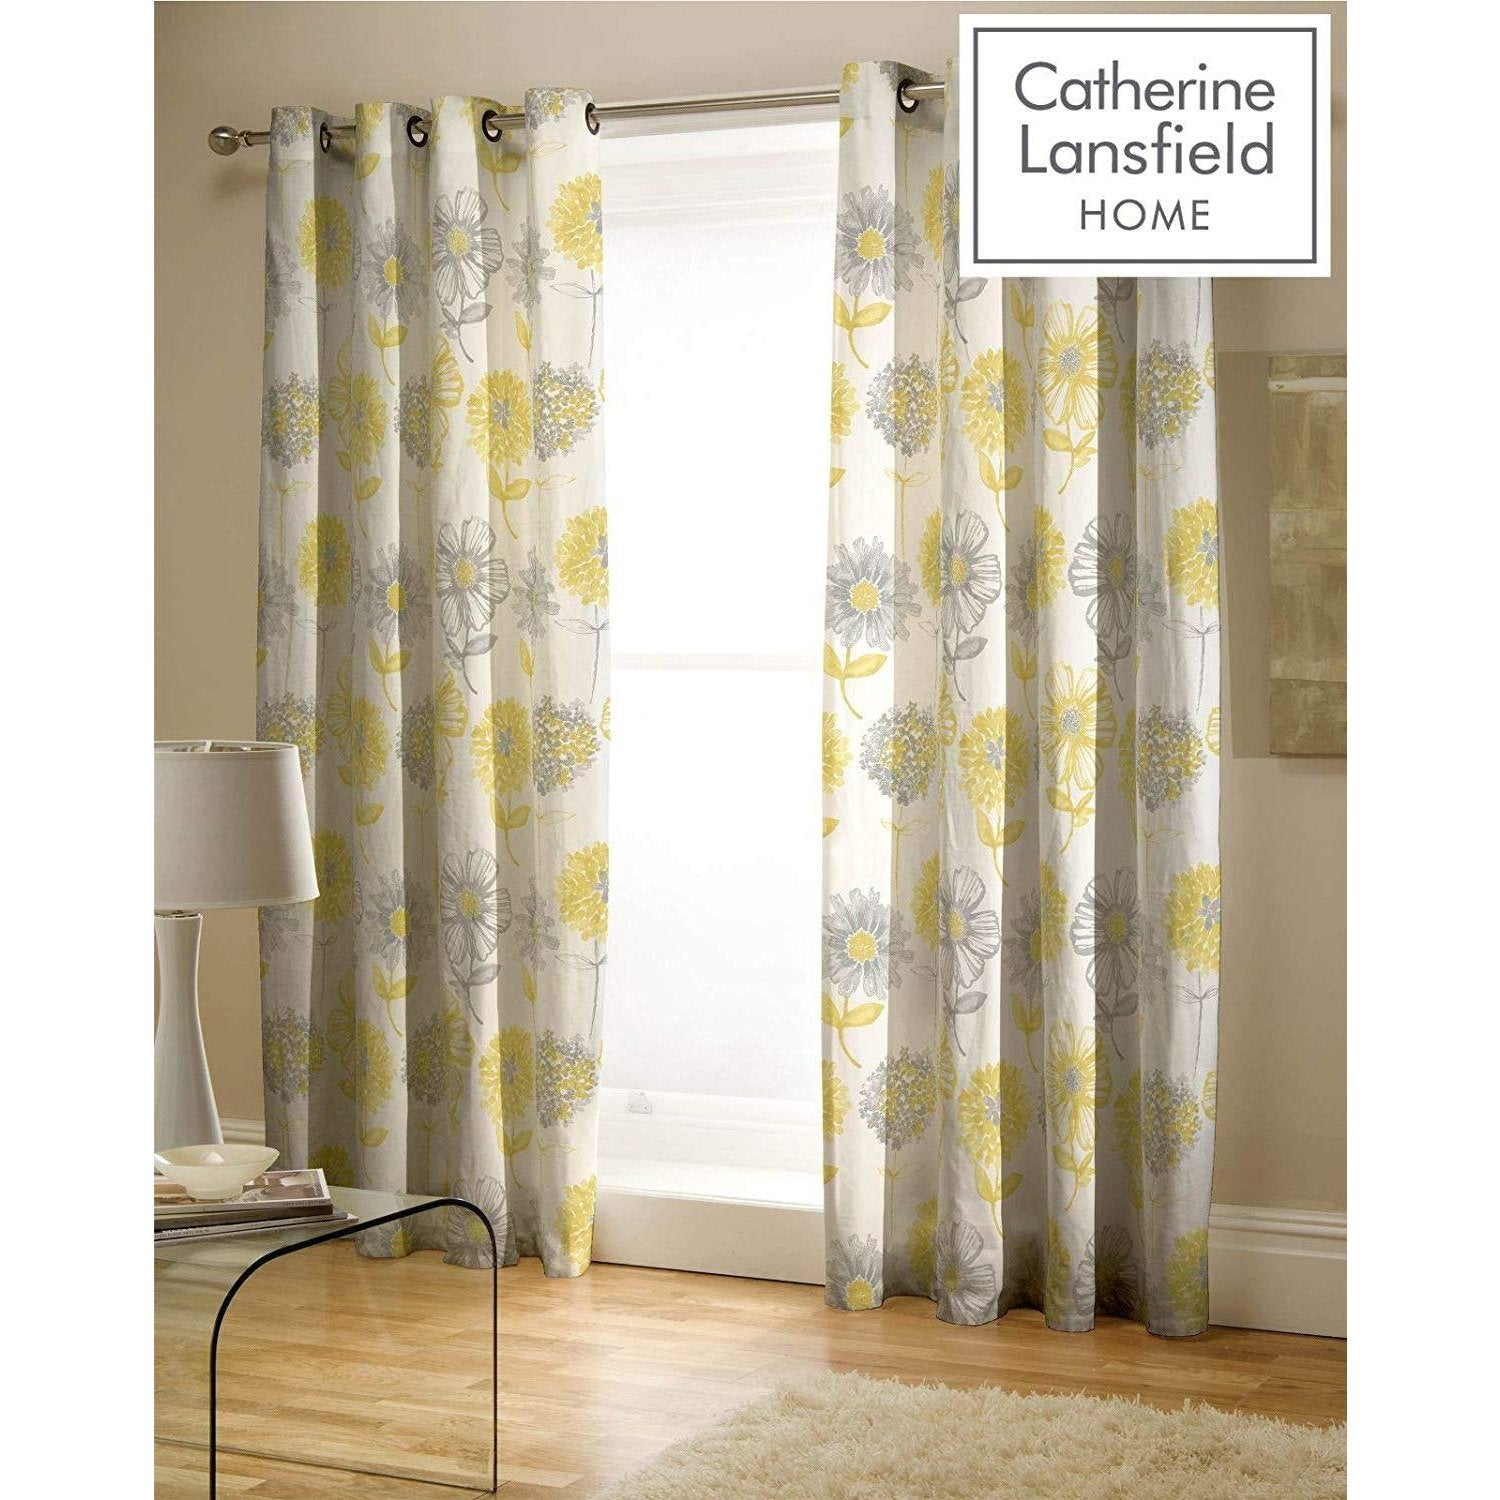 CATHERINE LANSFIELD : Banbury Floral Curtains 66 X 72